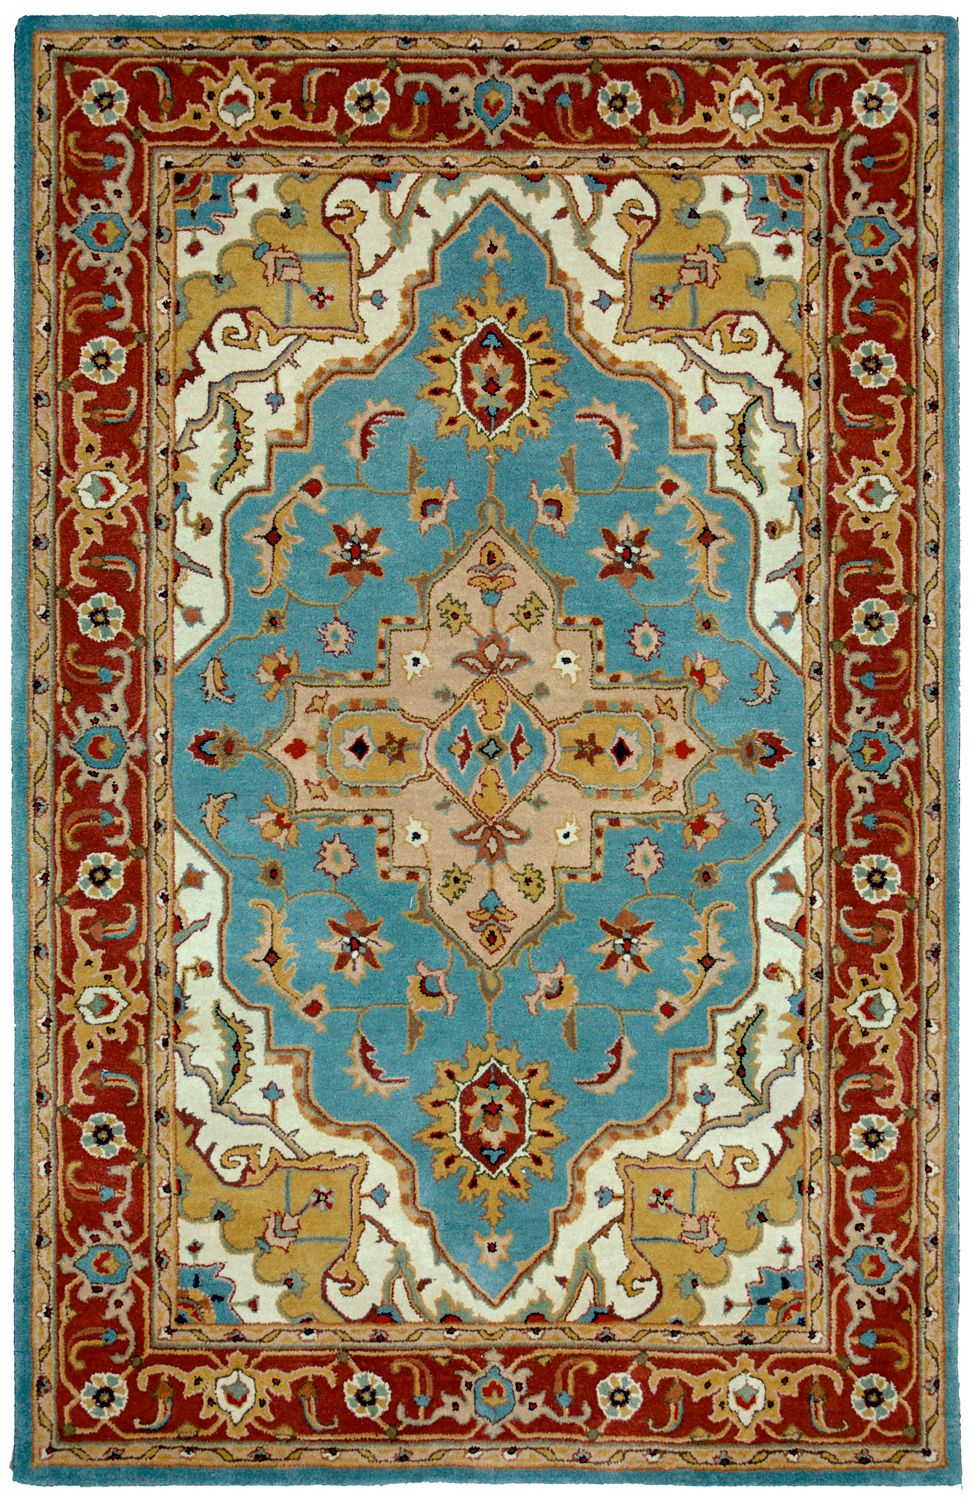 ~ Tempest Collection, Liberty Oriental Rugs, India-inspired rug, neutral and jewel tones, I need this for my bedroom.